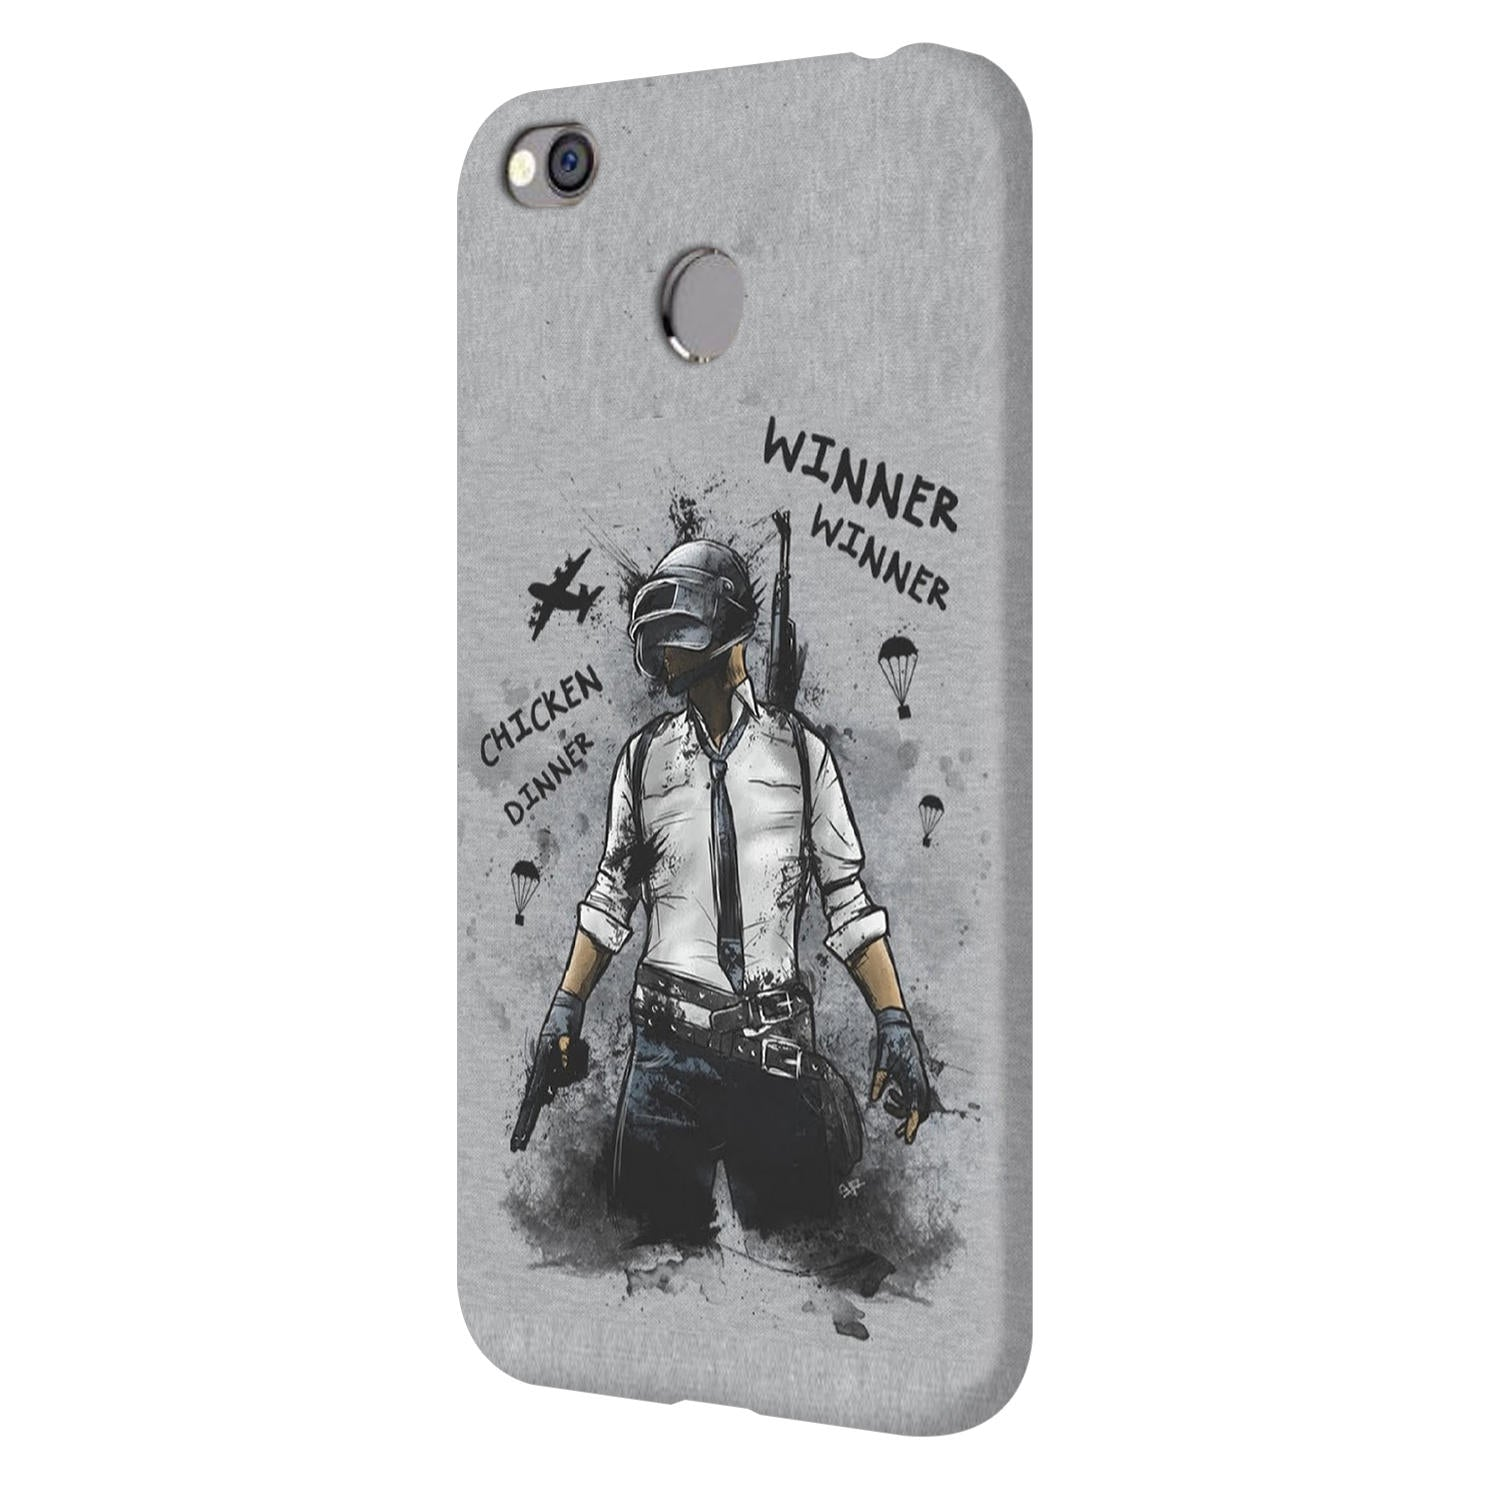 Winner Winner Chicken Dinner Typography Art Vivo V7 Plus Mobile Cover Case - MADANYU